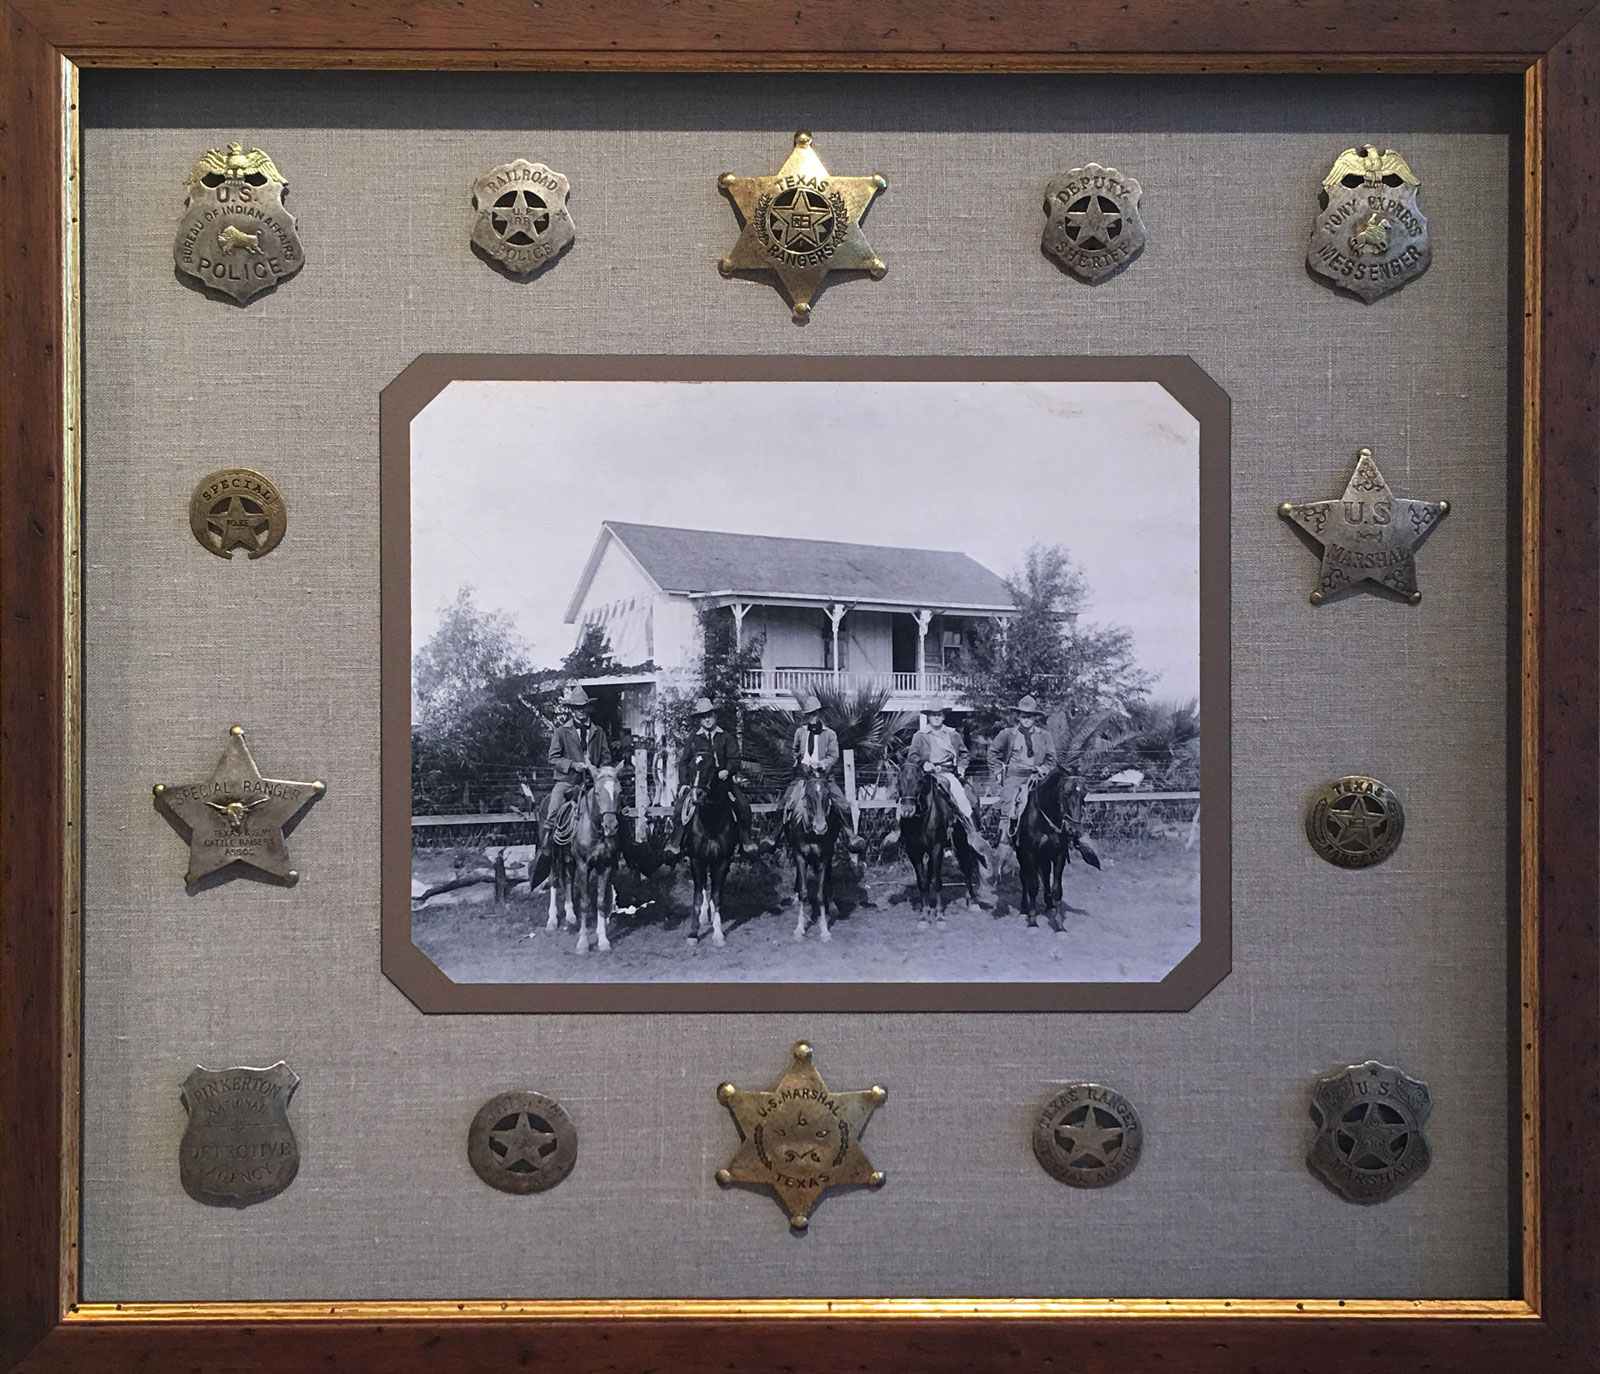 The Texas Rangers with Peace Officer Badges